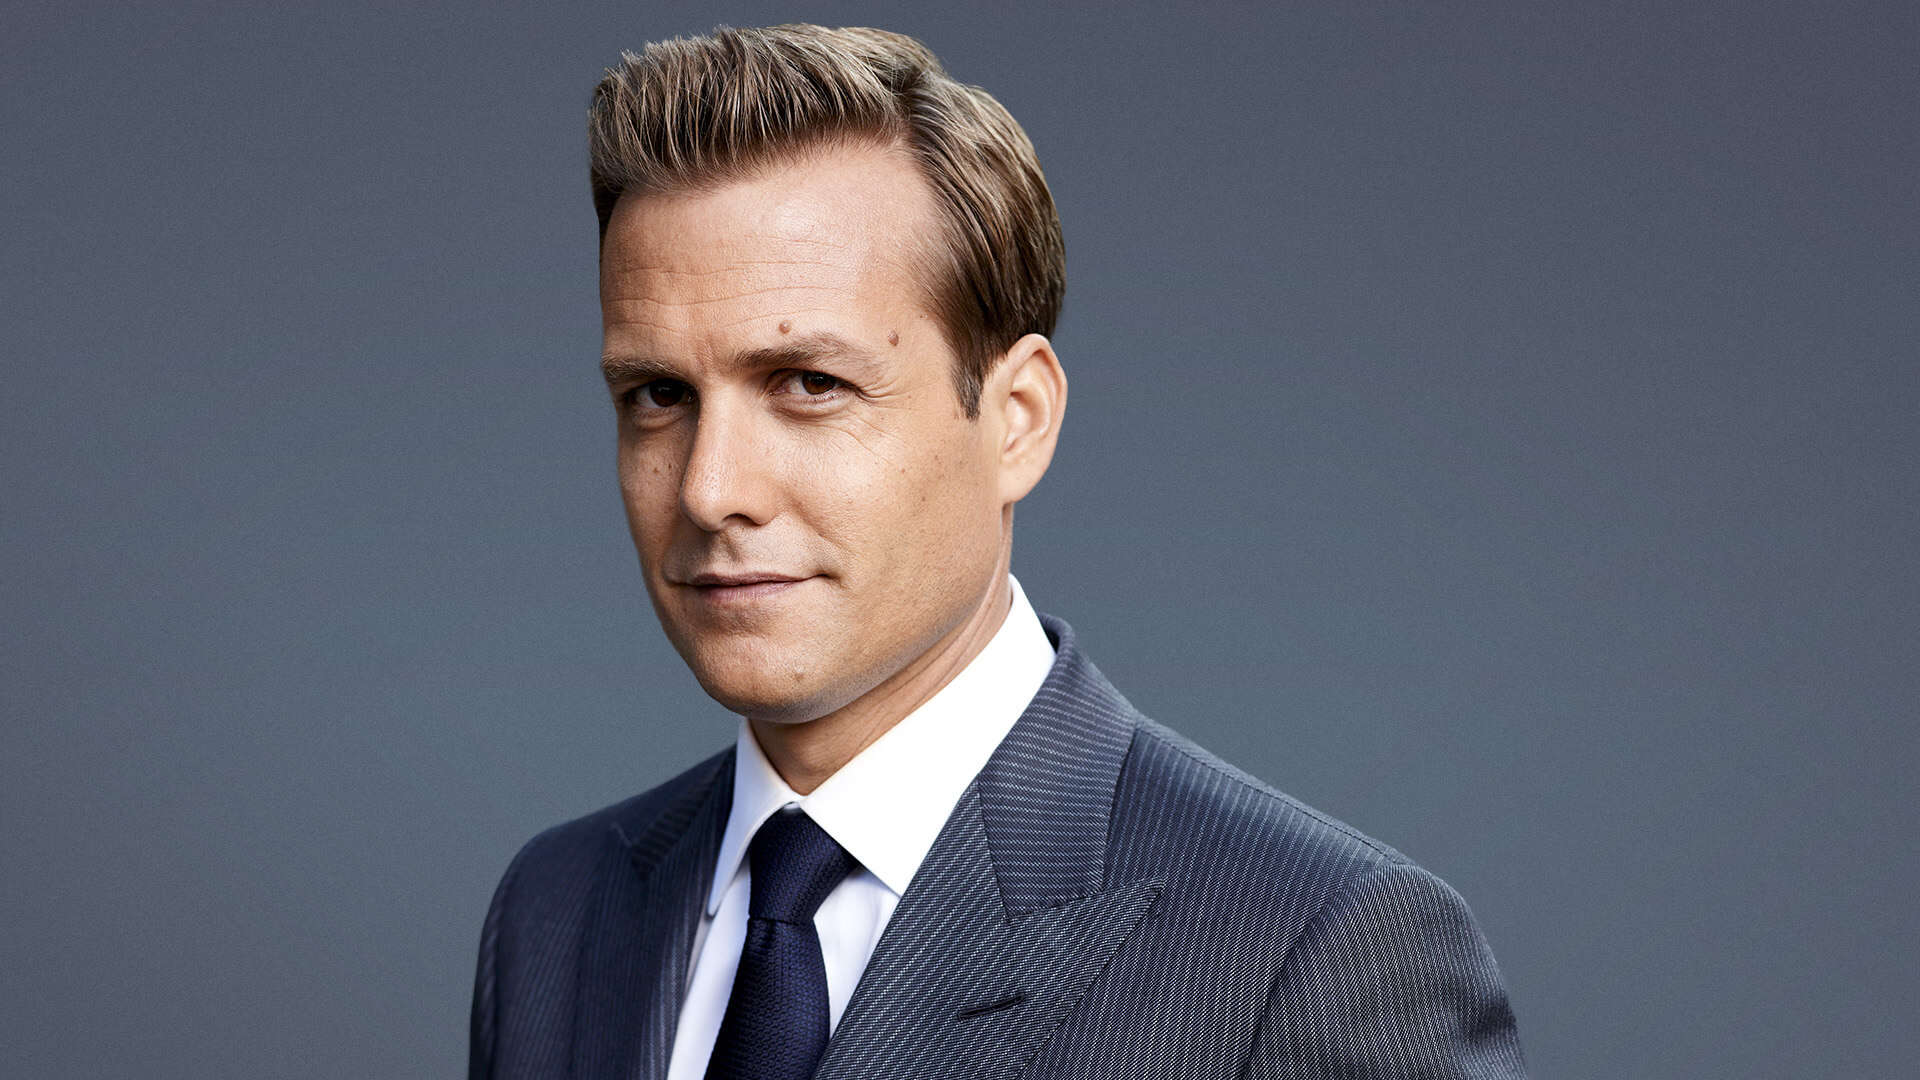 Suits Of Harvey Specter &amp How To Dress Like Him + Hair - Hairstyle Pictures